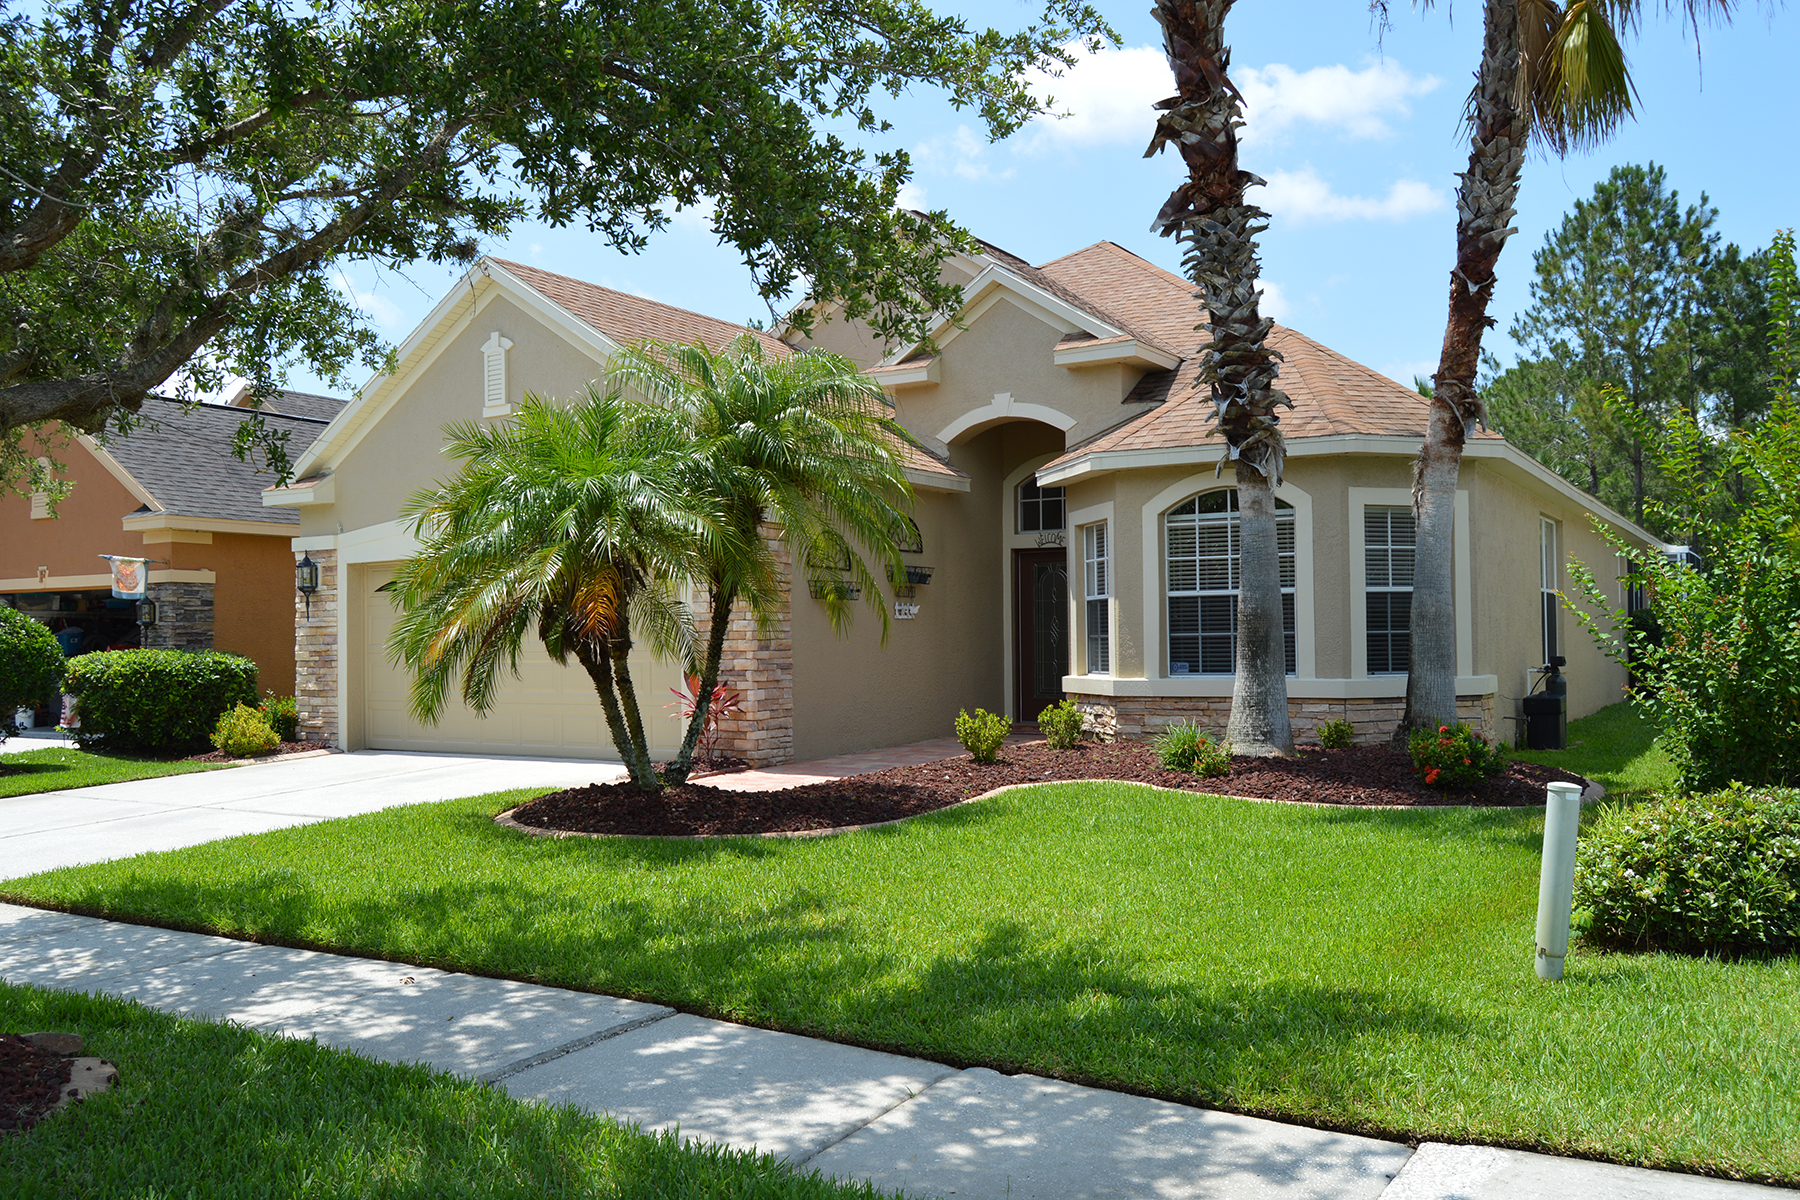 Single Family Home for Sale at TAMPA 11237 Blacksmith Dr Tampa, Florida, 33626 United States